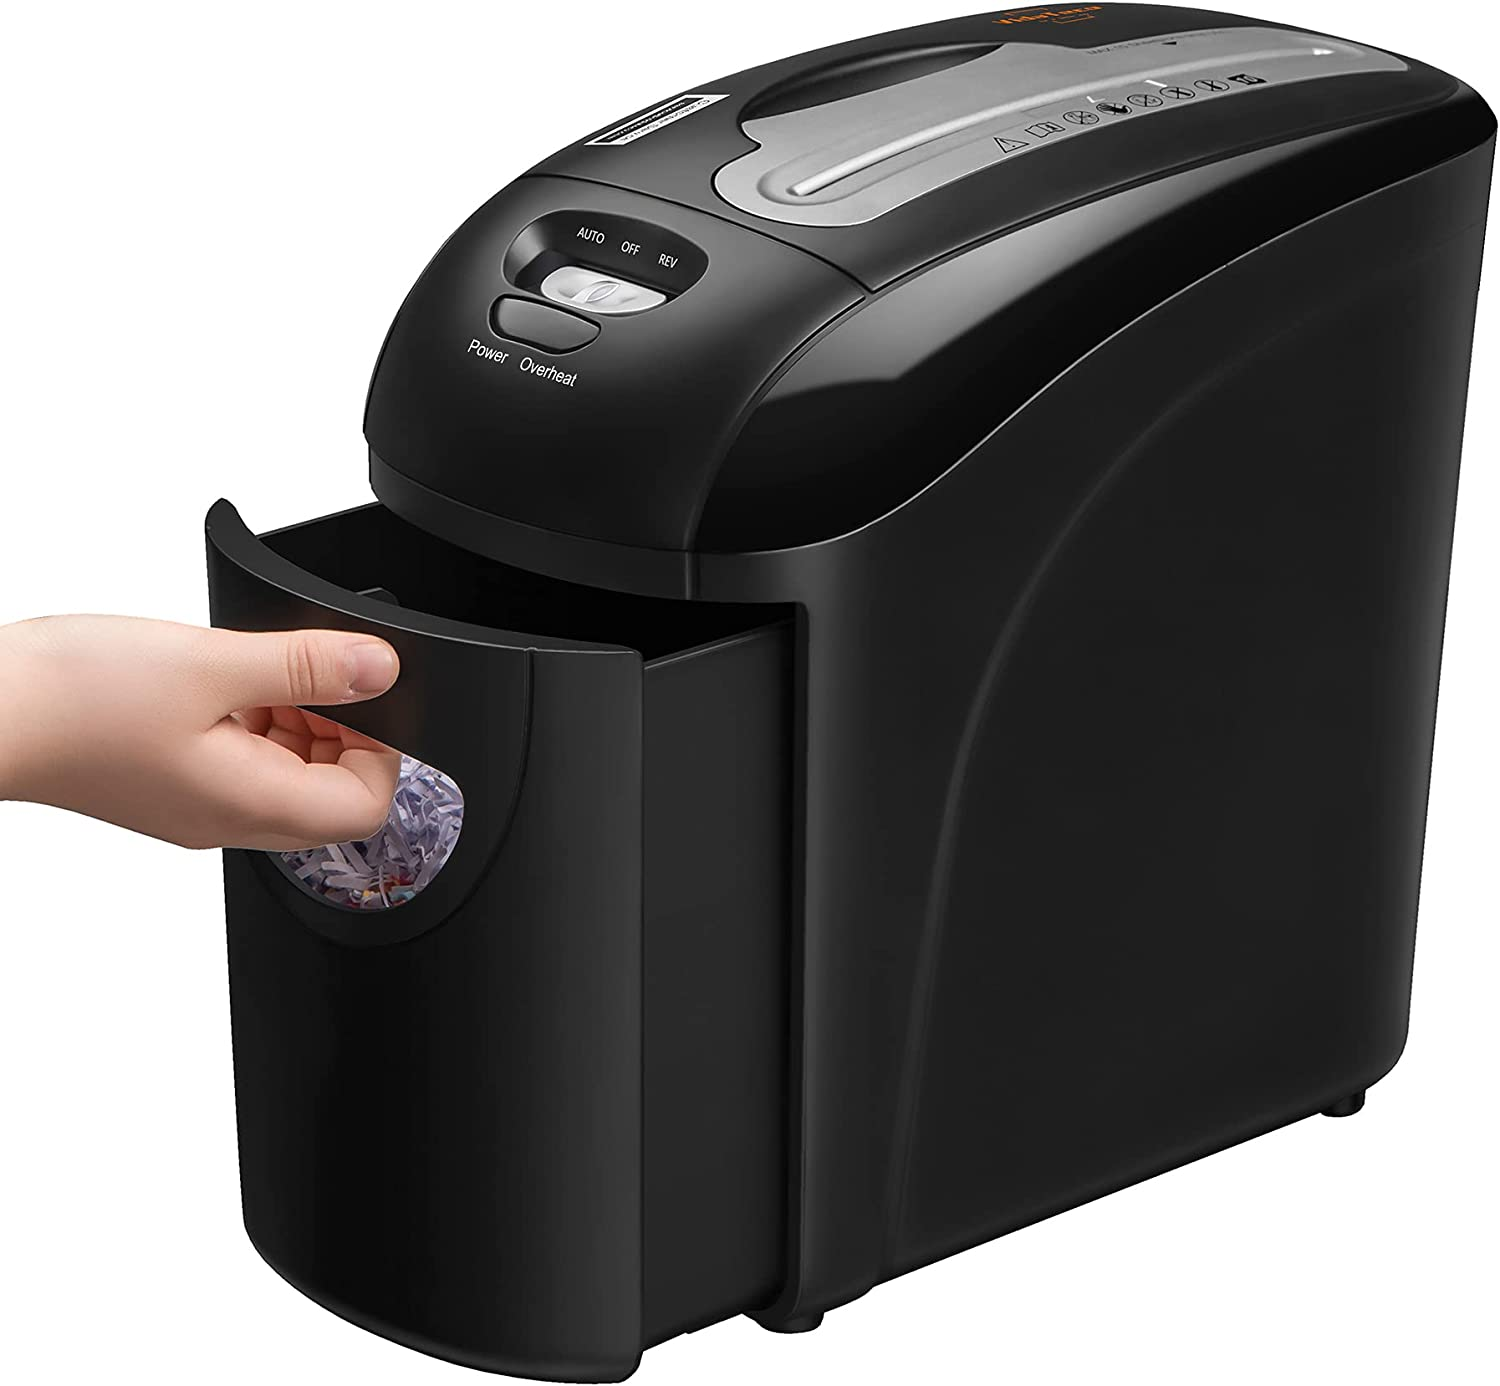 Small Shredder for Home, VidaTeco 10-Sheet Micro Cut Shredder with US Patented Cutter,Higher Security P-4,Card/Paper Shredder for Home Office Use with Jam Proof System,2.65-Gallon Pull Out Basket(ETL)